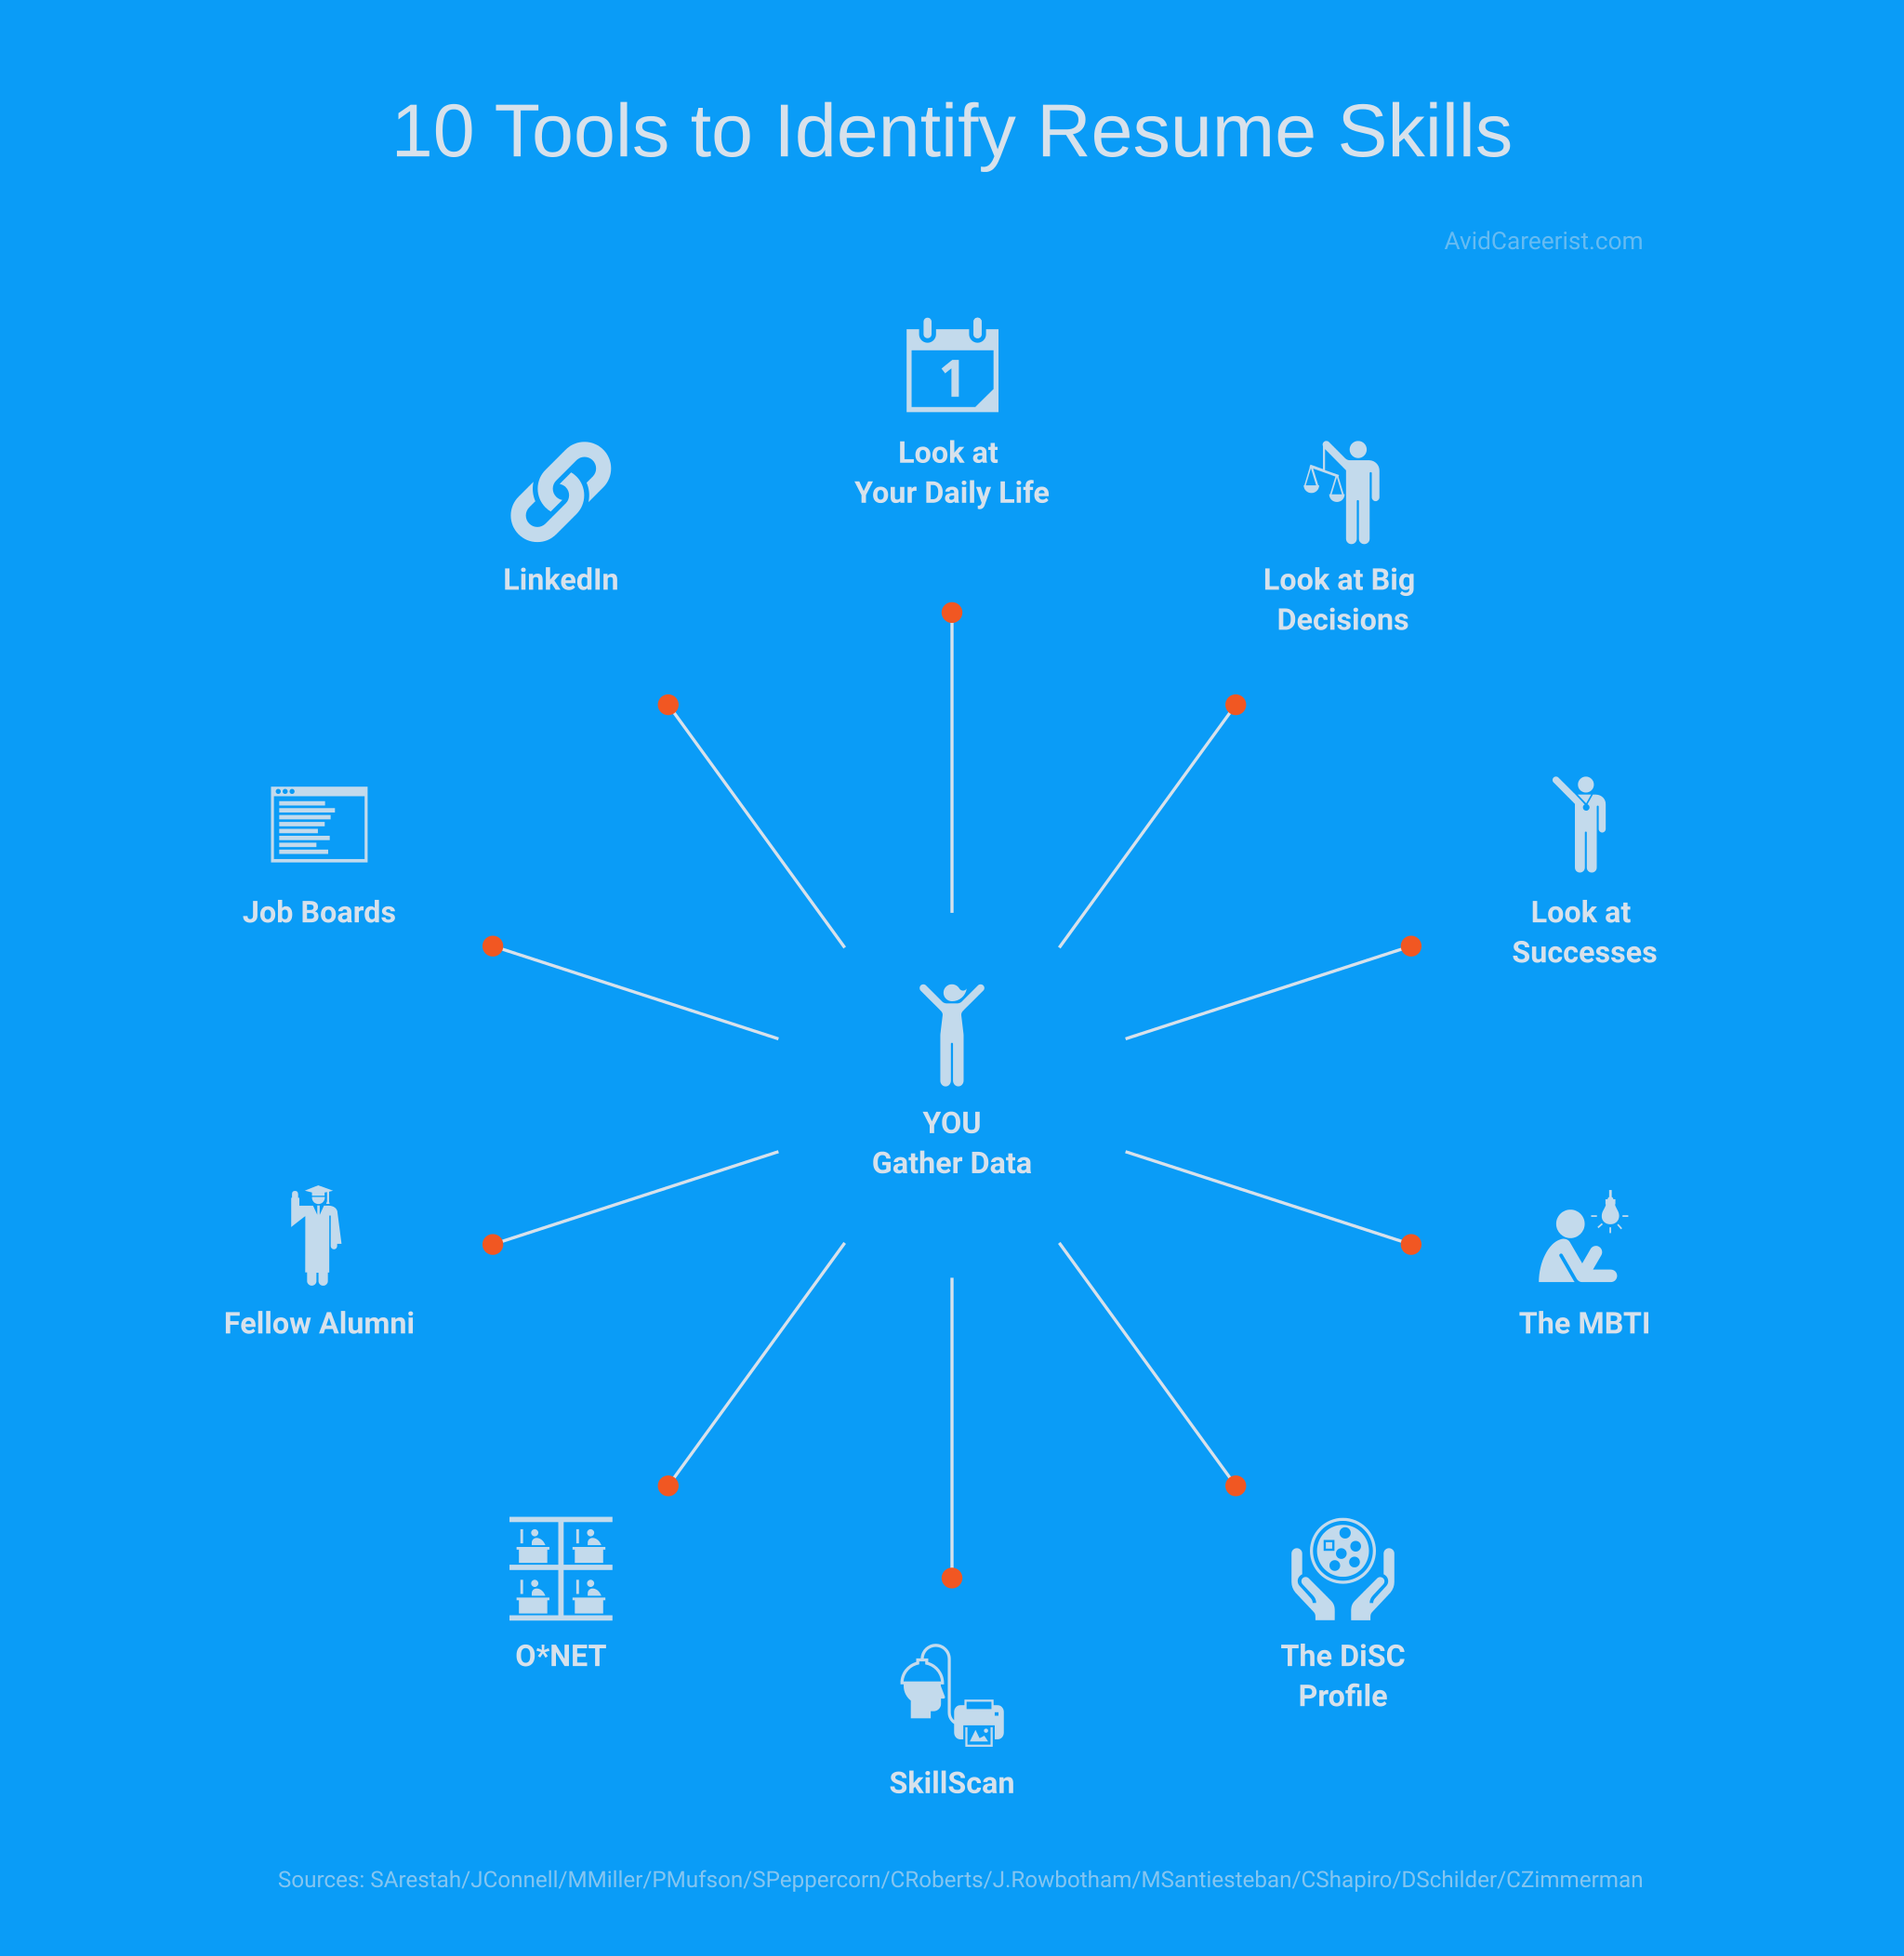 skills to put on your resume 10 tools to help you identify them